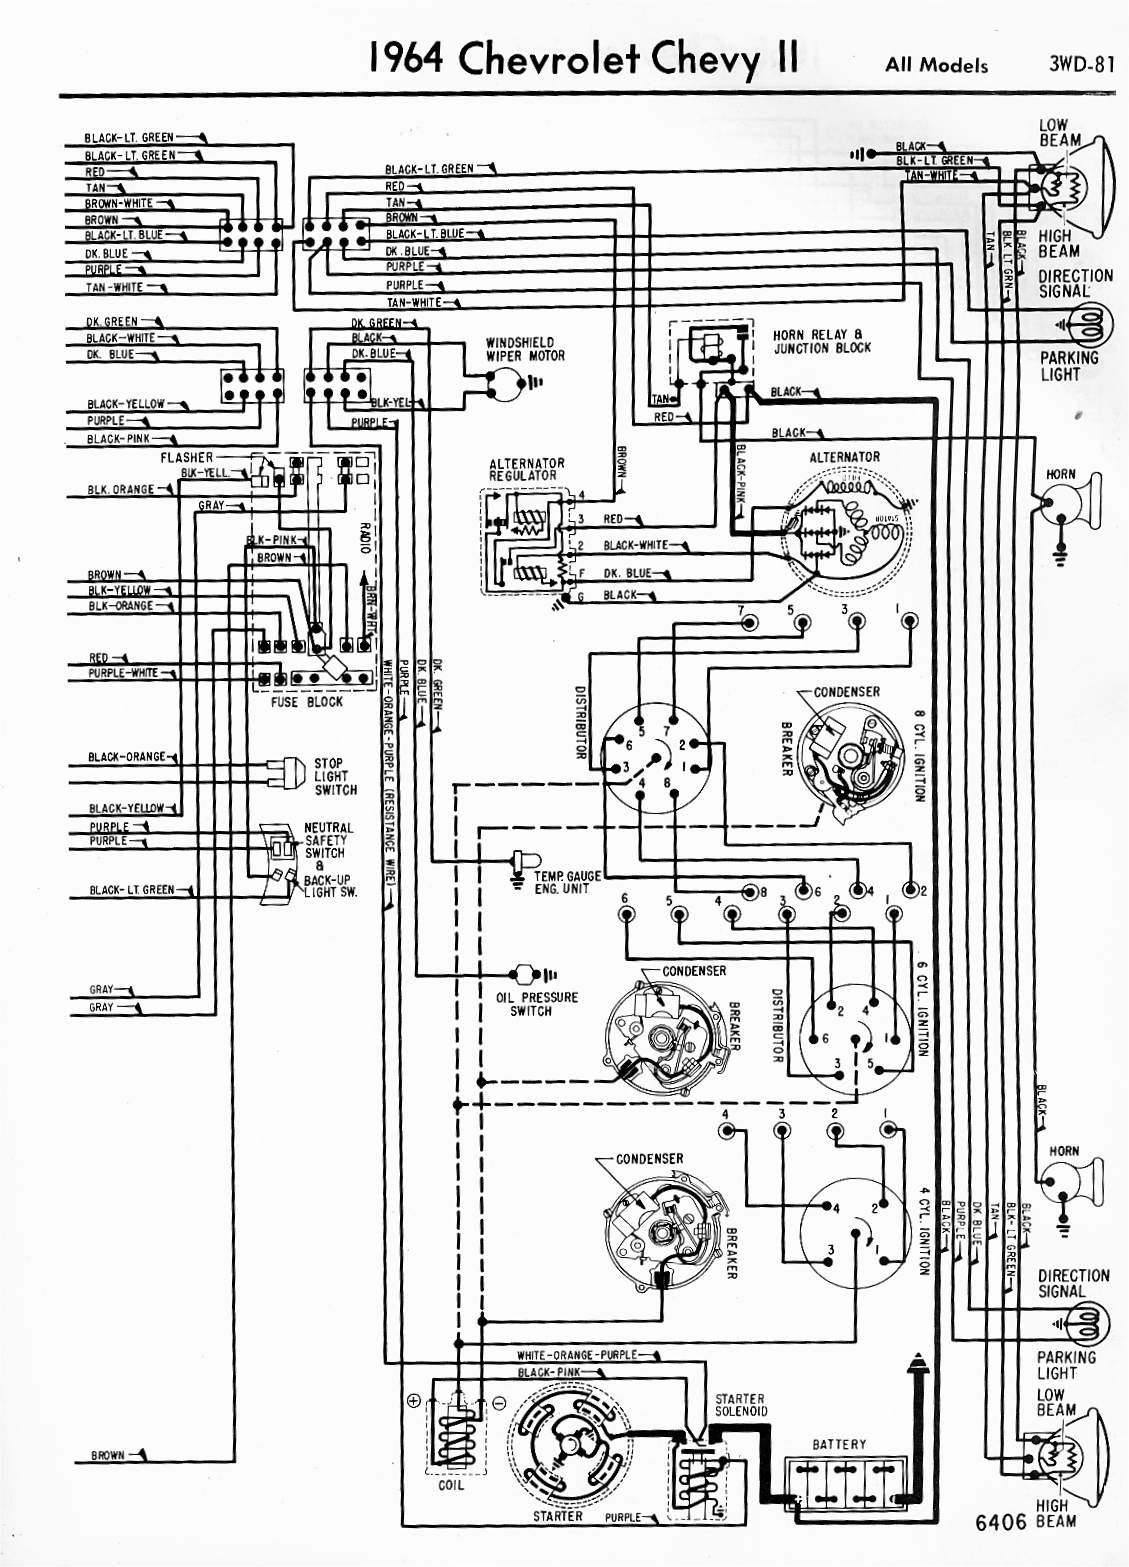 1967 Camaro Ss Fuse Box Panel Wiring Diagram Libraries 81 Label 69 Chevelle Simple Diagram64 Z28